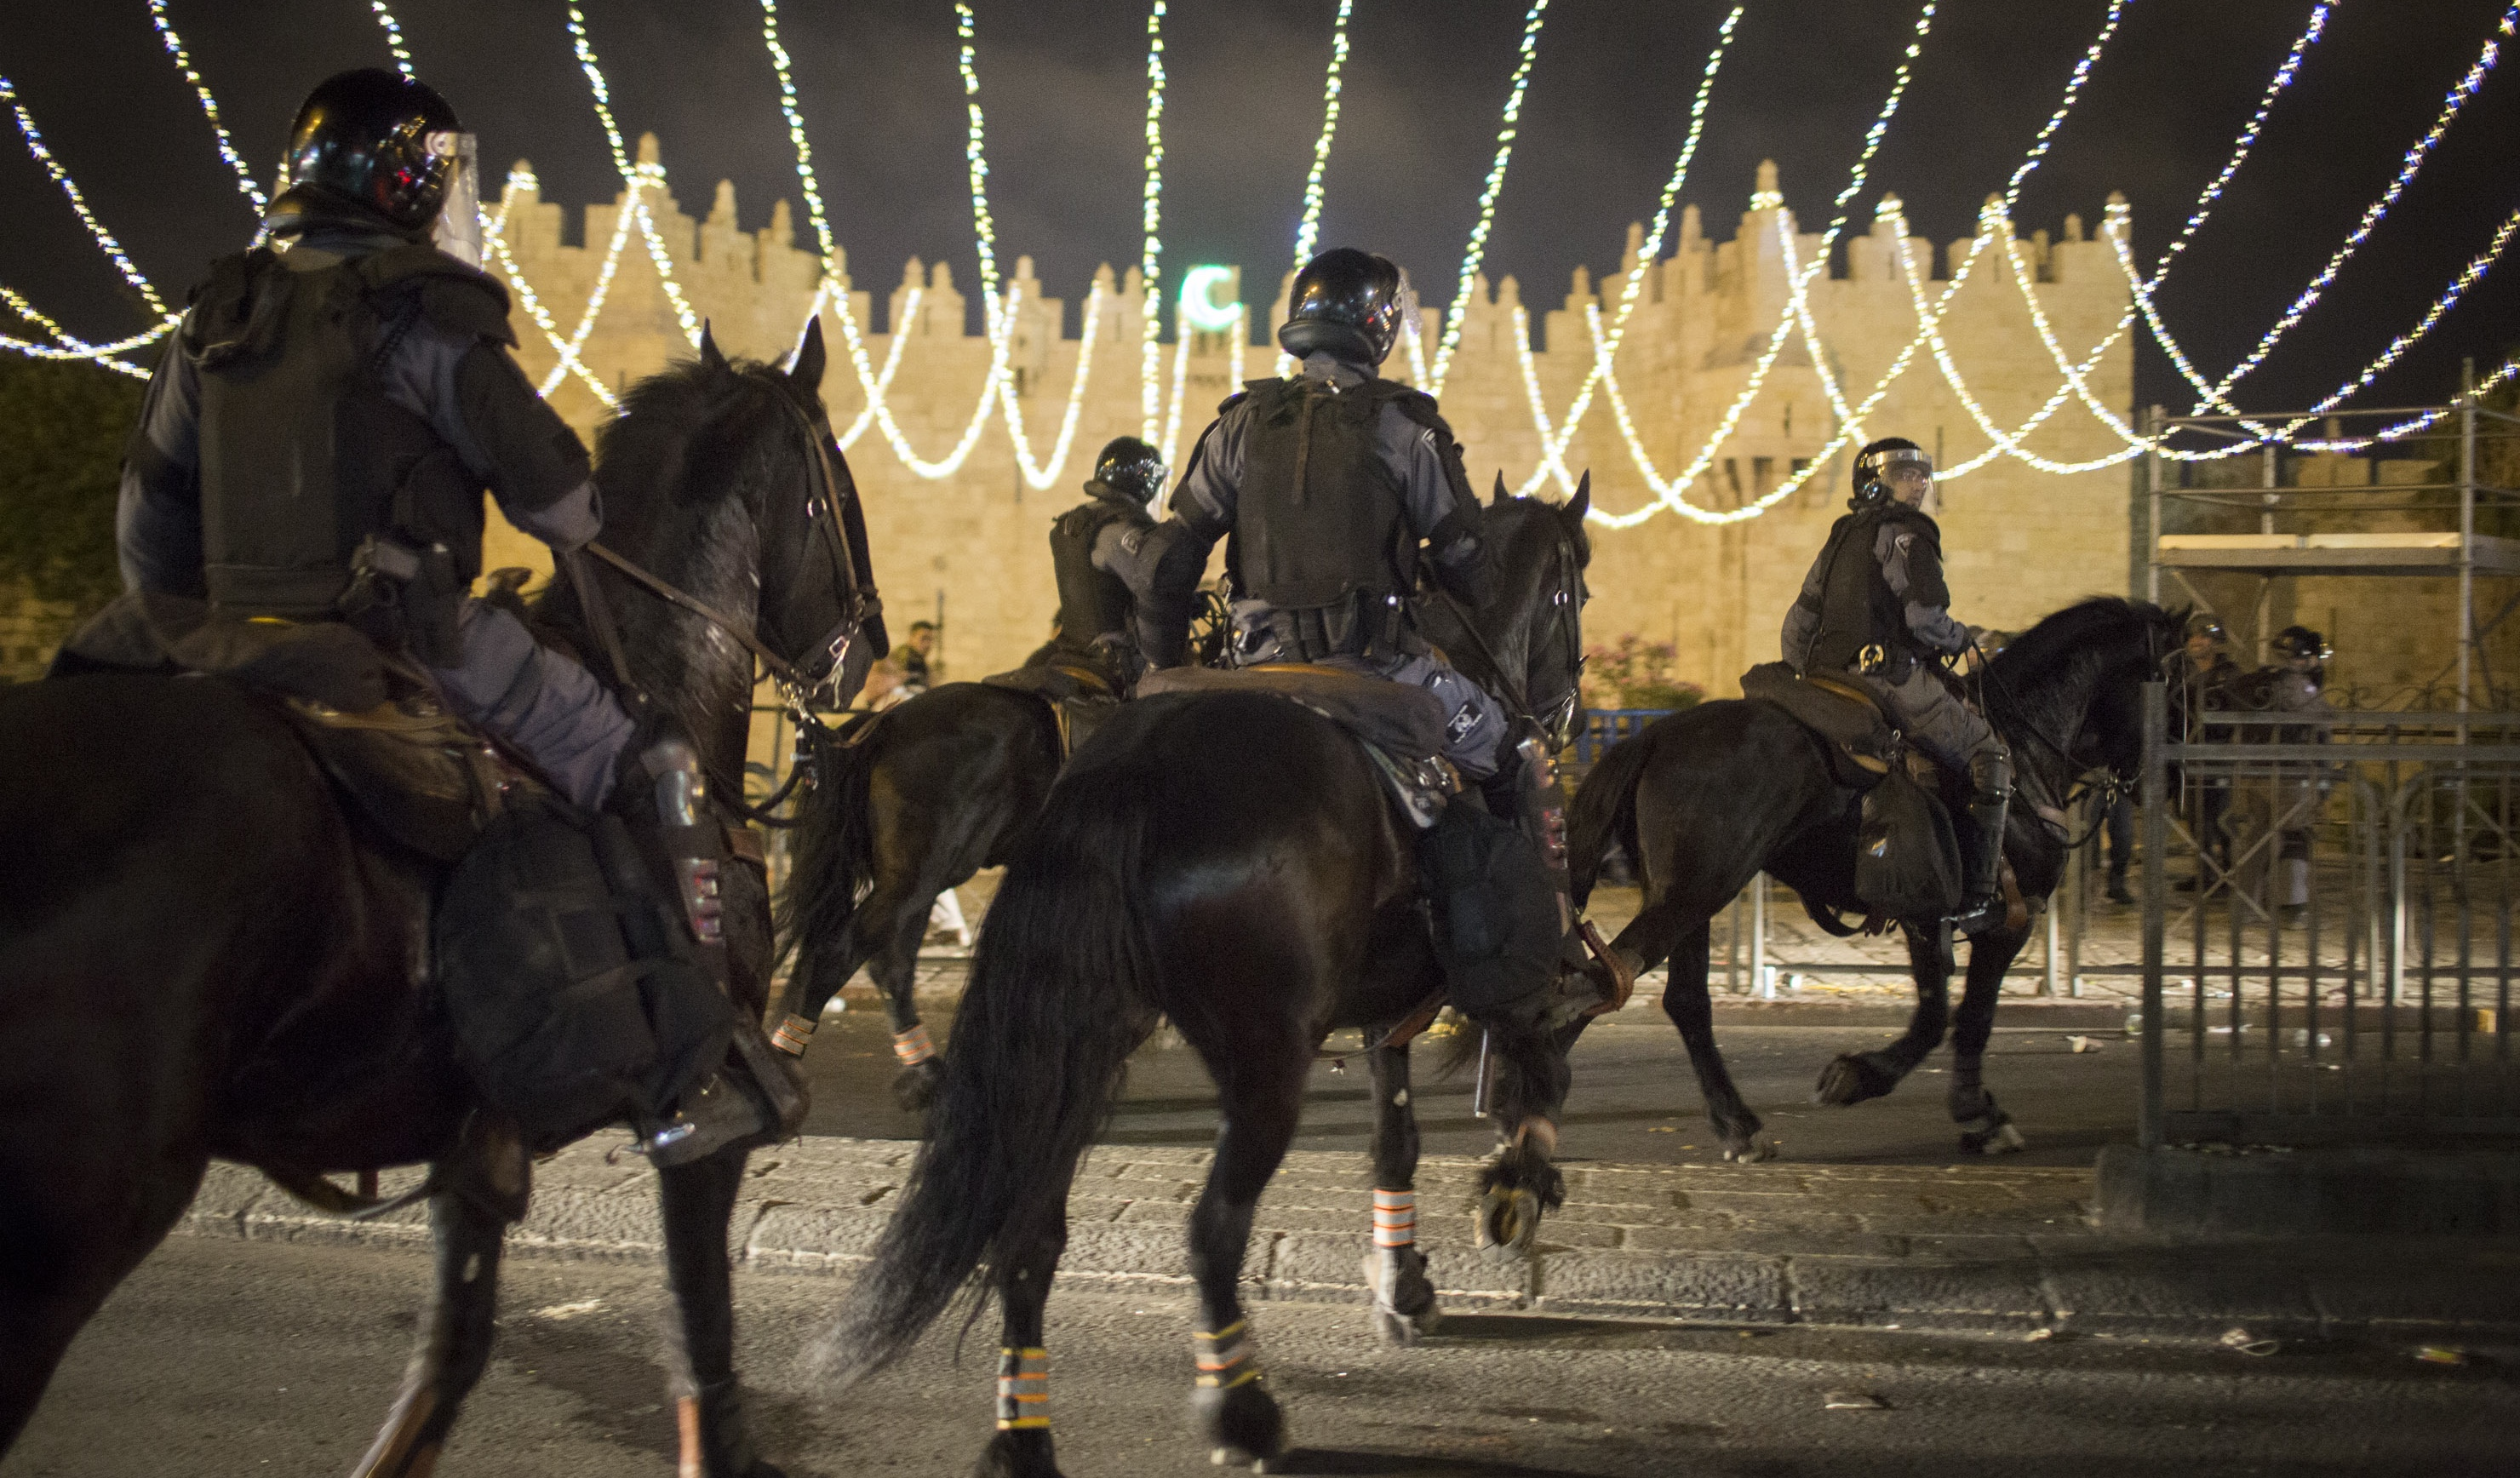 Mounted Israeli policemen disperse Palestinians at the end of the Ramadan fast, outside Jerusalem's old city, June 21, 2015. (Photo: ActiveStills / Oren Ziv)